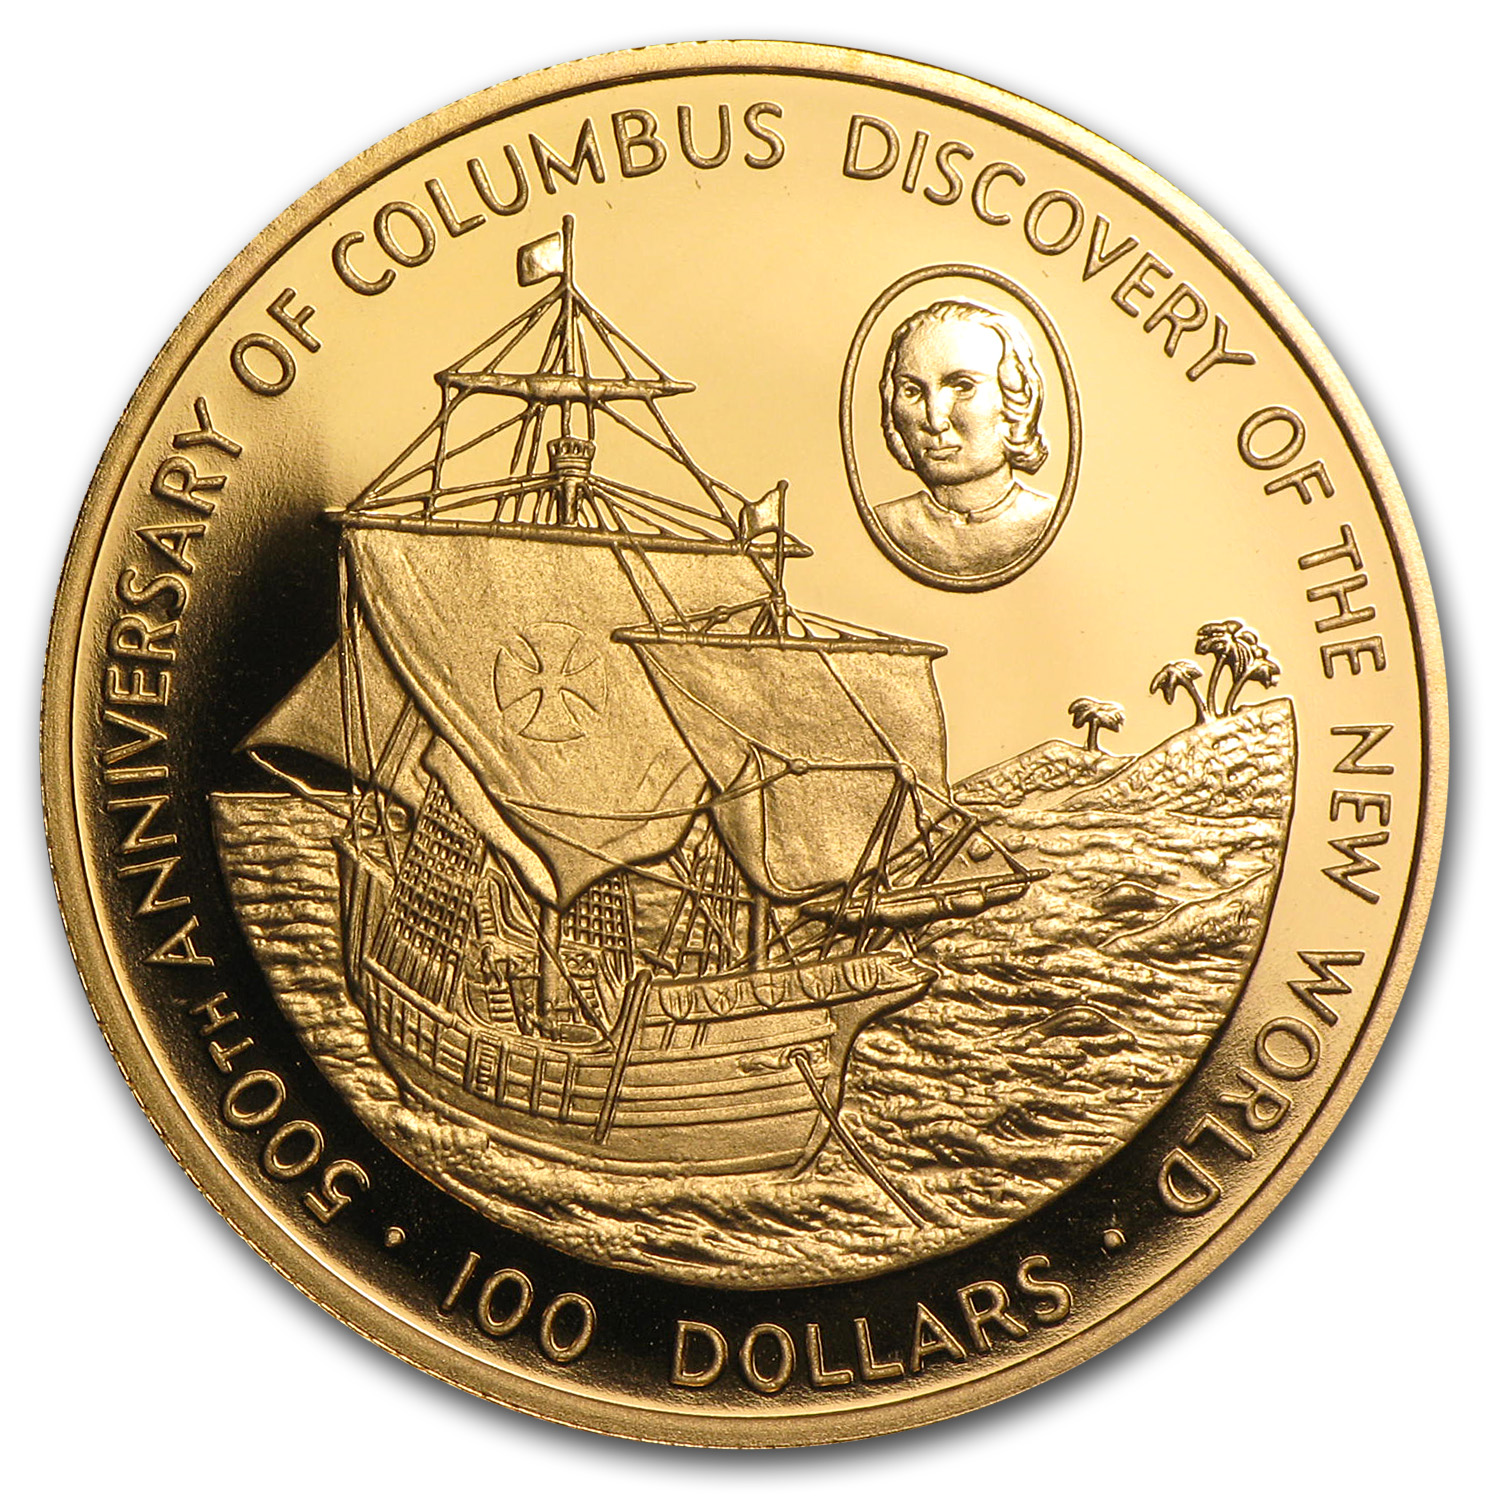 Cayman Islands 1988 Gold 100 Dollars Proof Columbus